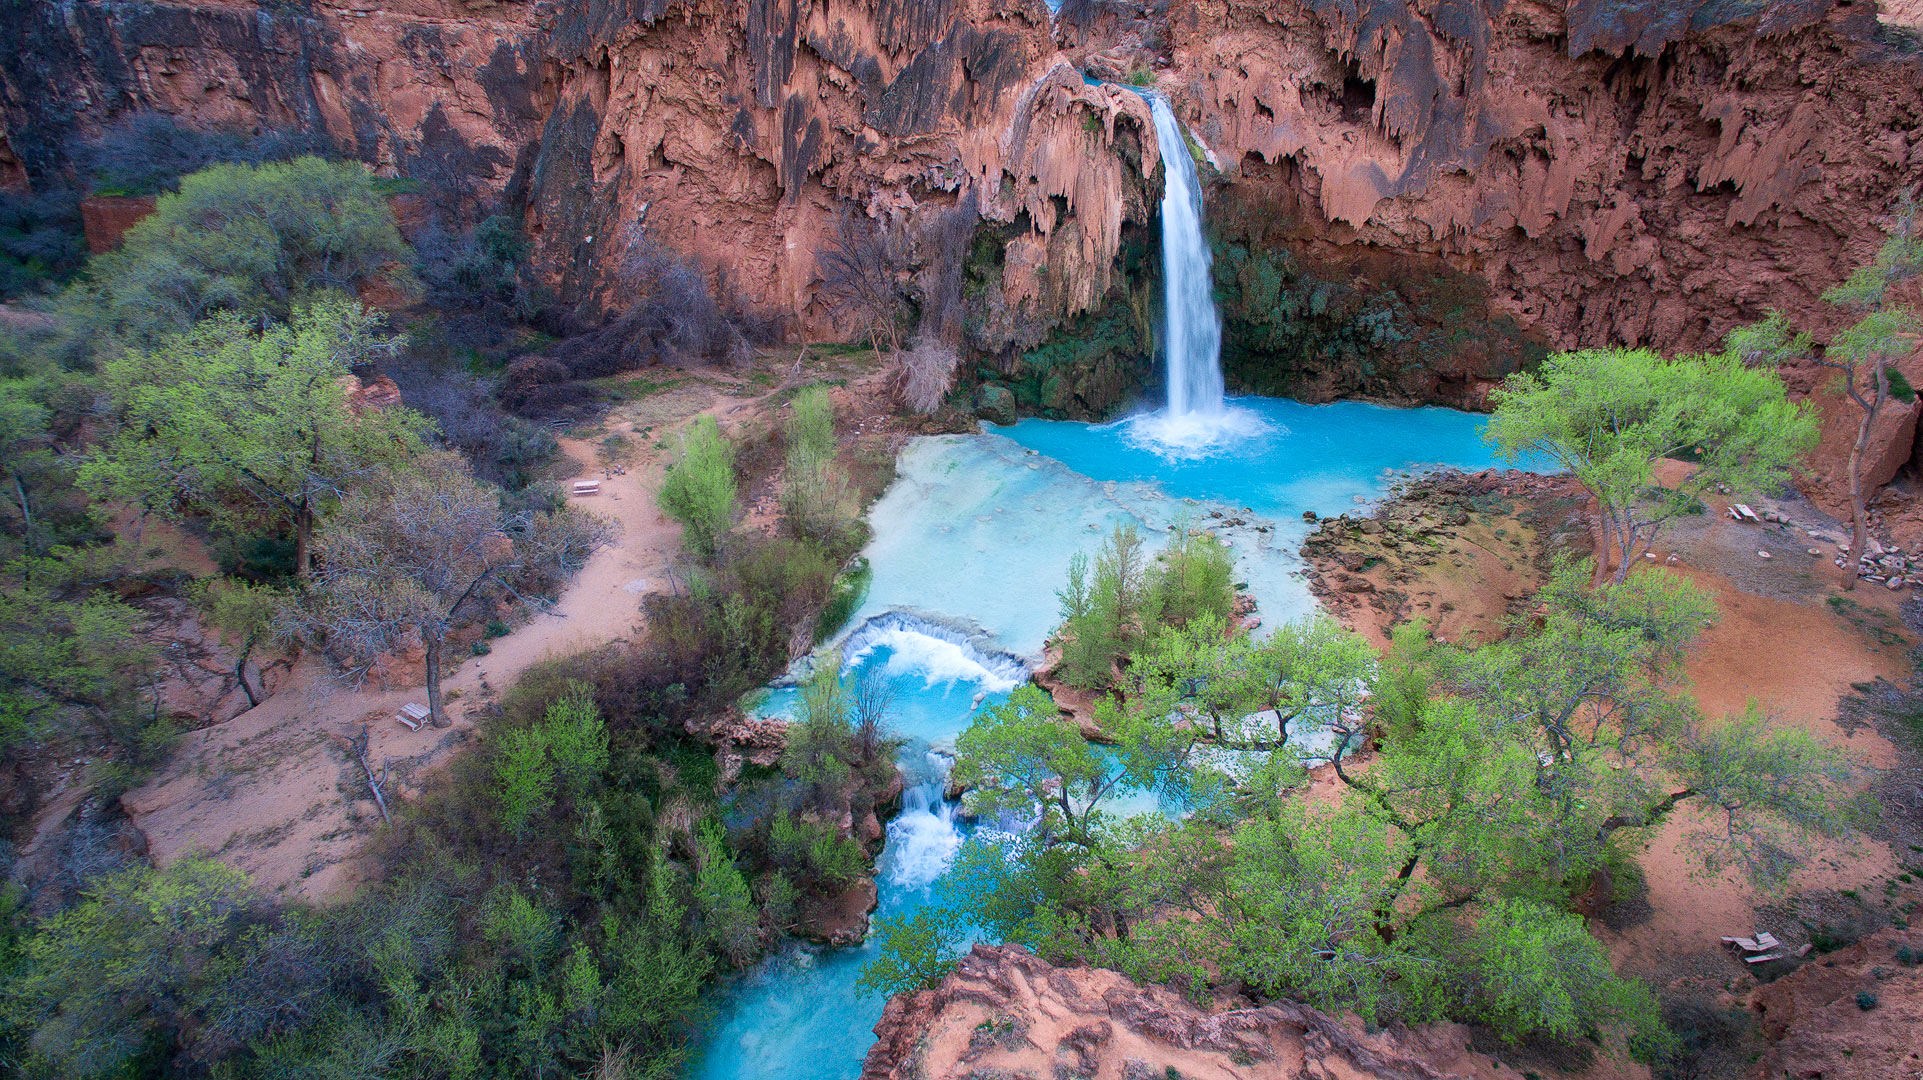 Havasupai, Havasupai Falls, Indian reservation, arizona, blue water, southwest, desert, waterfalls, trails, canyons, photo